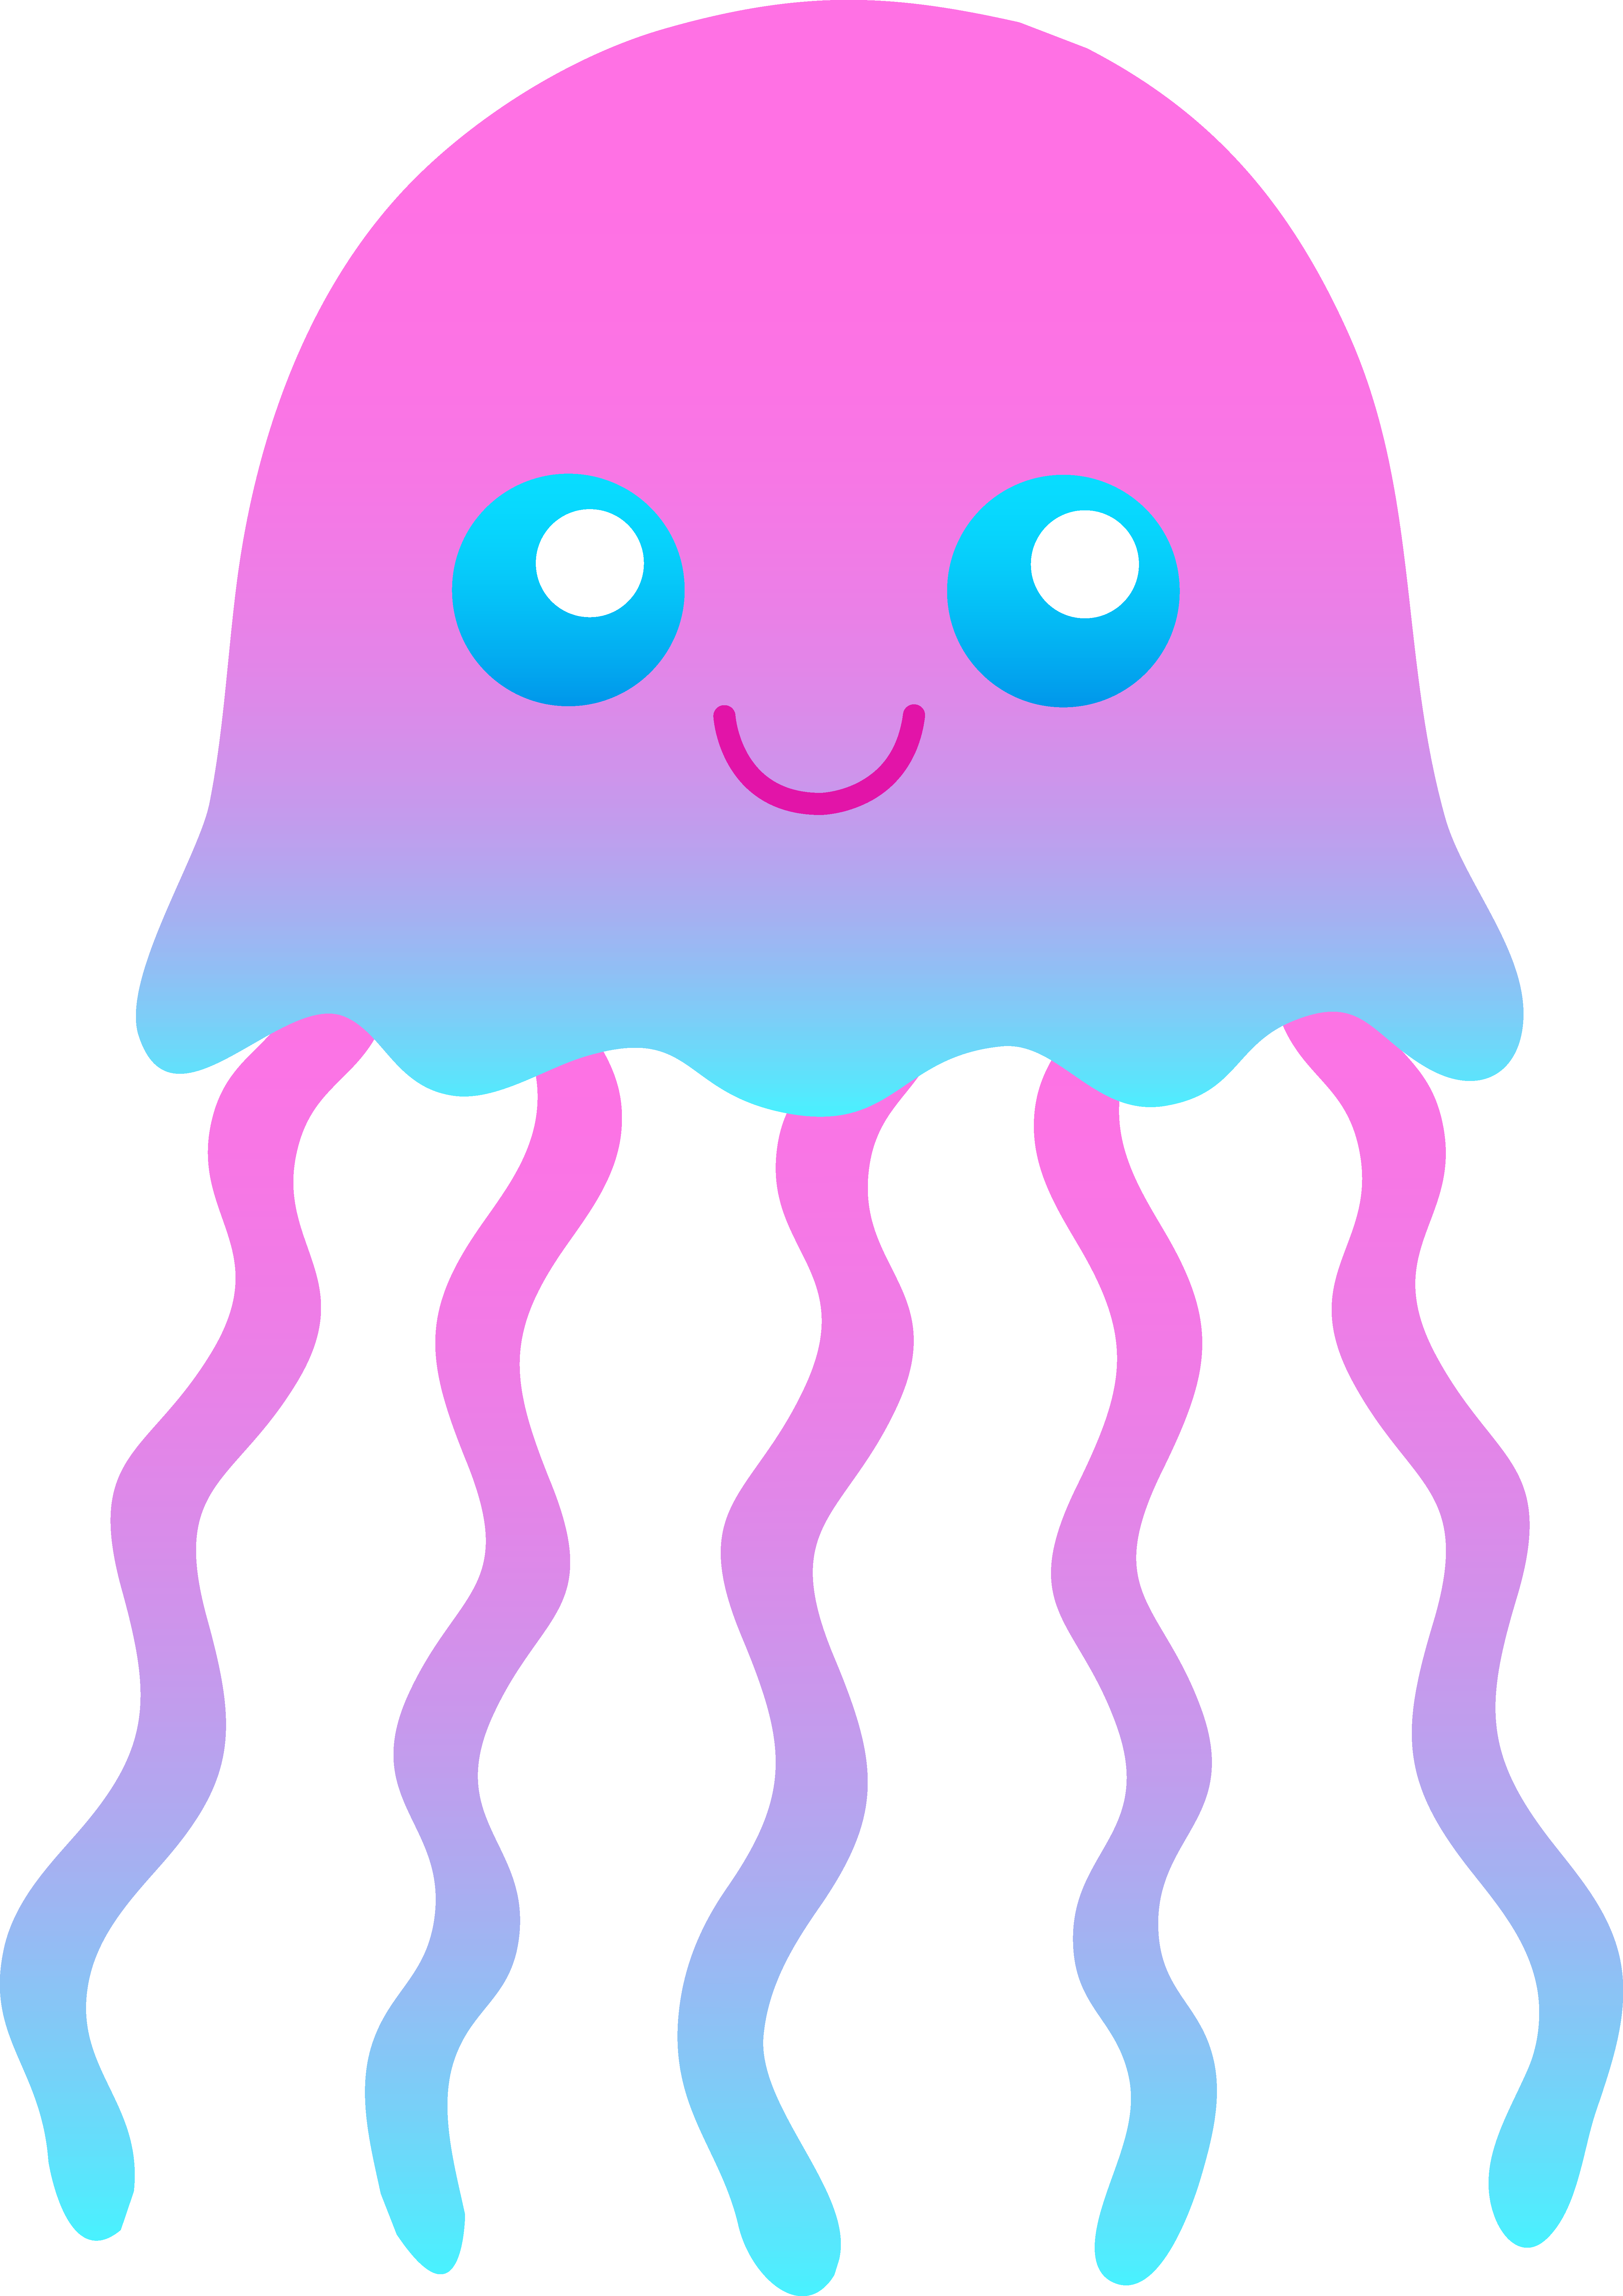 jellyfish clipart png 1